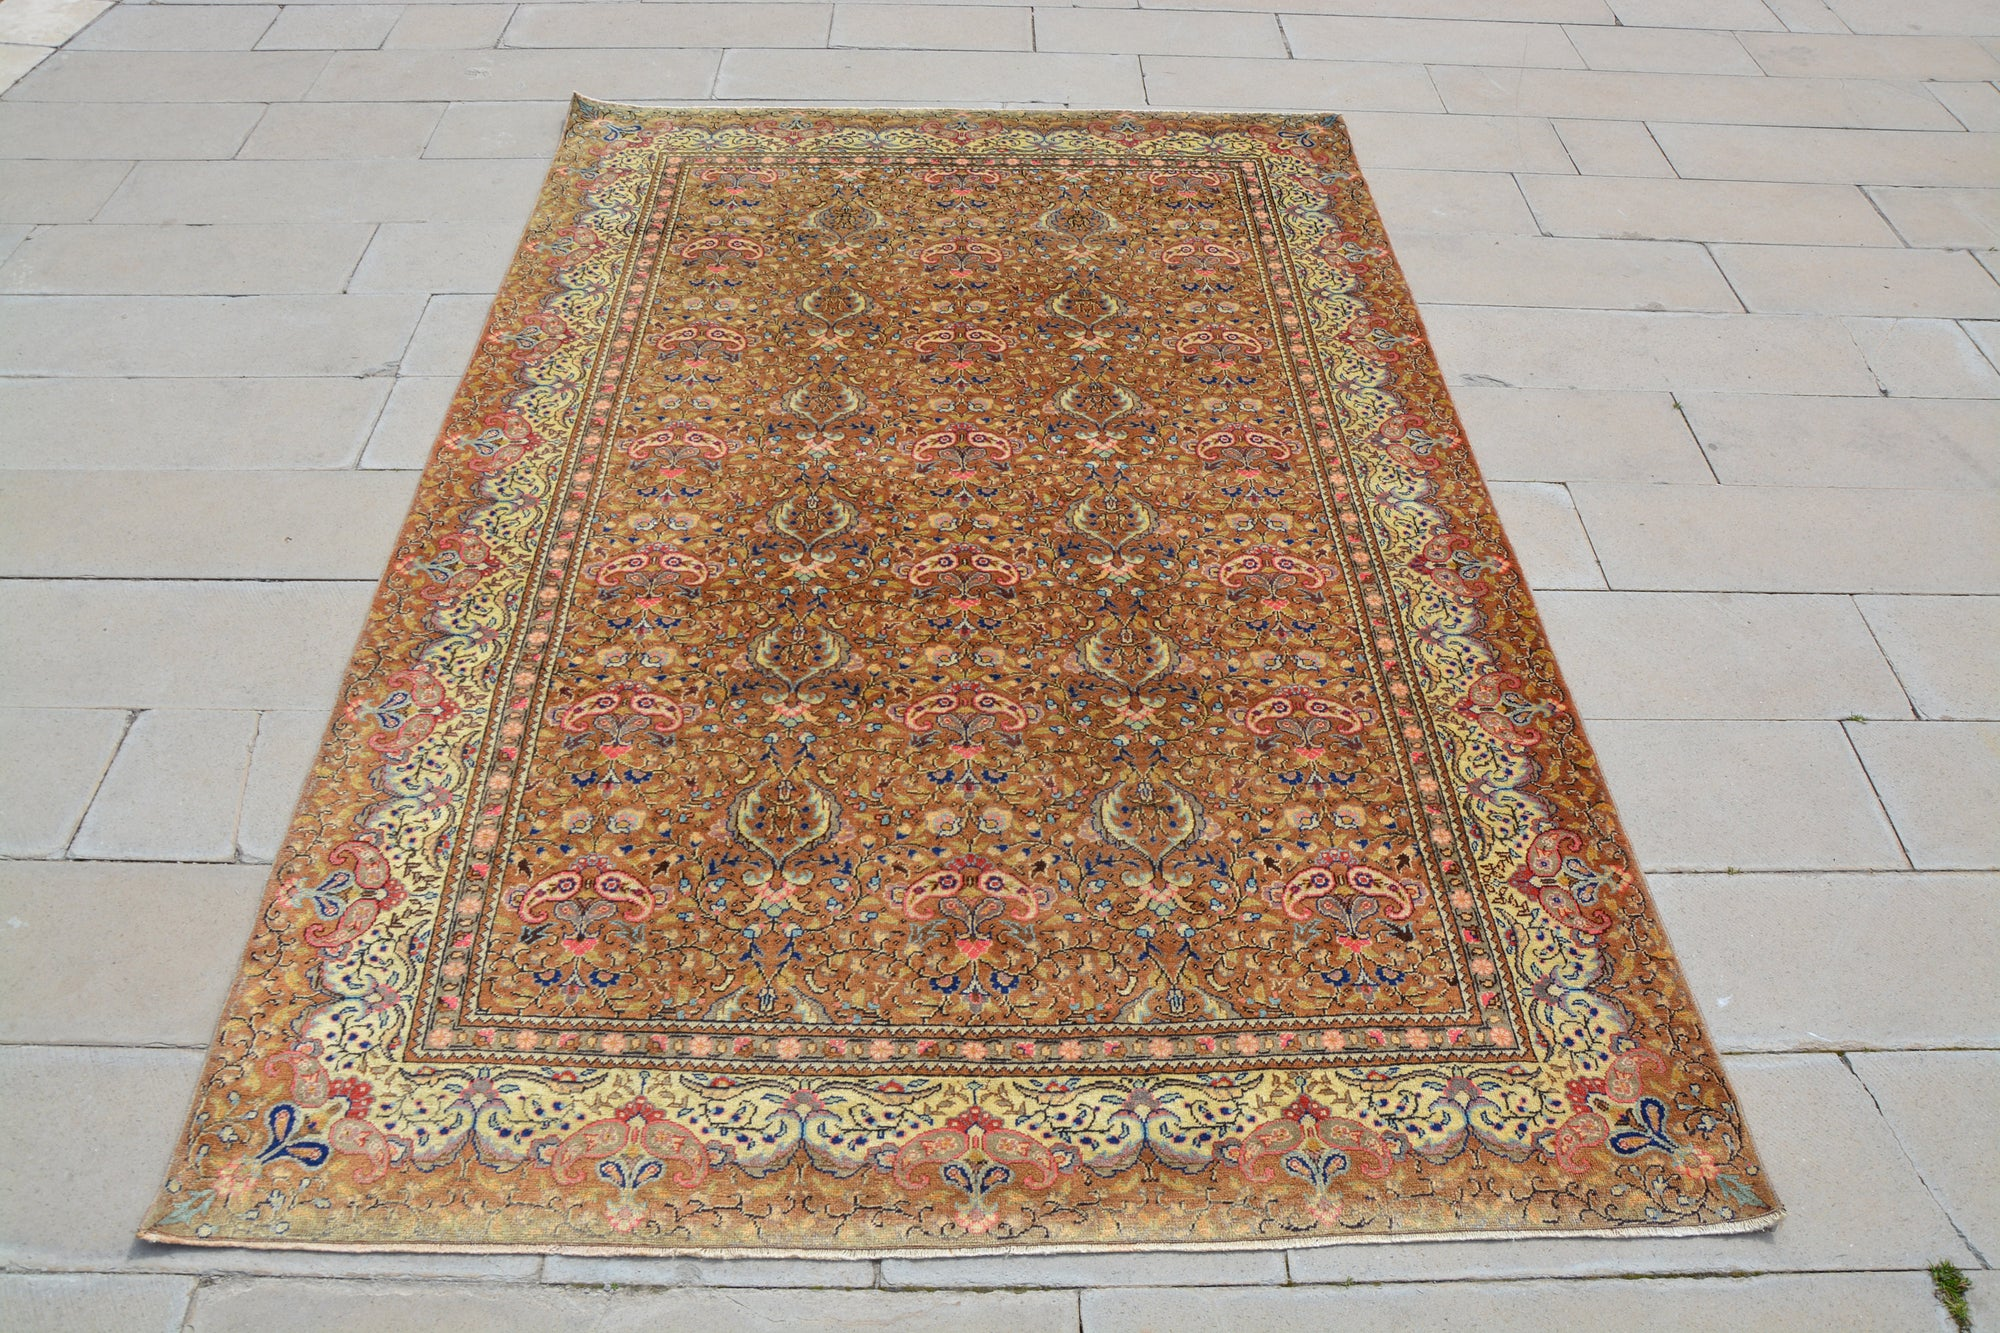 Turkey Rug, Floral Turkish Rug, Oriental Rug Carpet, Bordered Rug, Vintage Rug 6x9,  Turkish Brown  Rug,         6.3 x 9.5  Feet AG1017